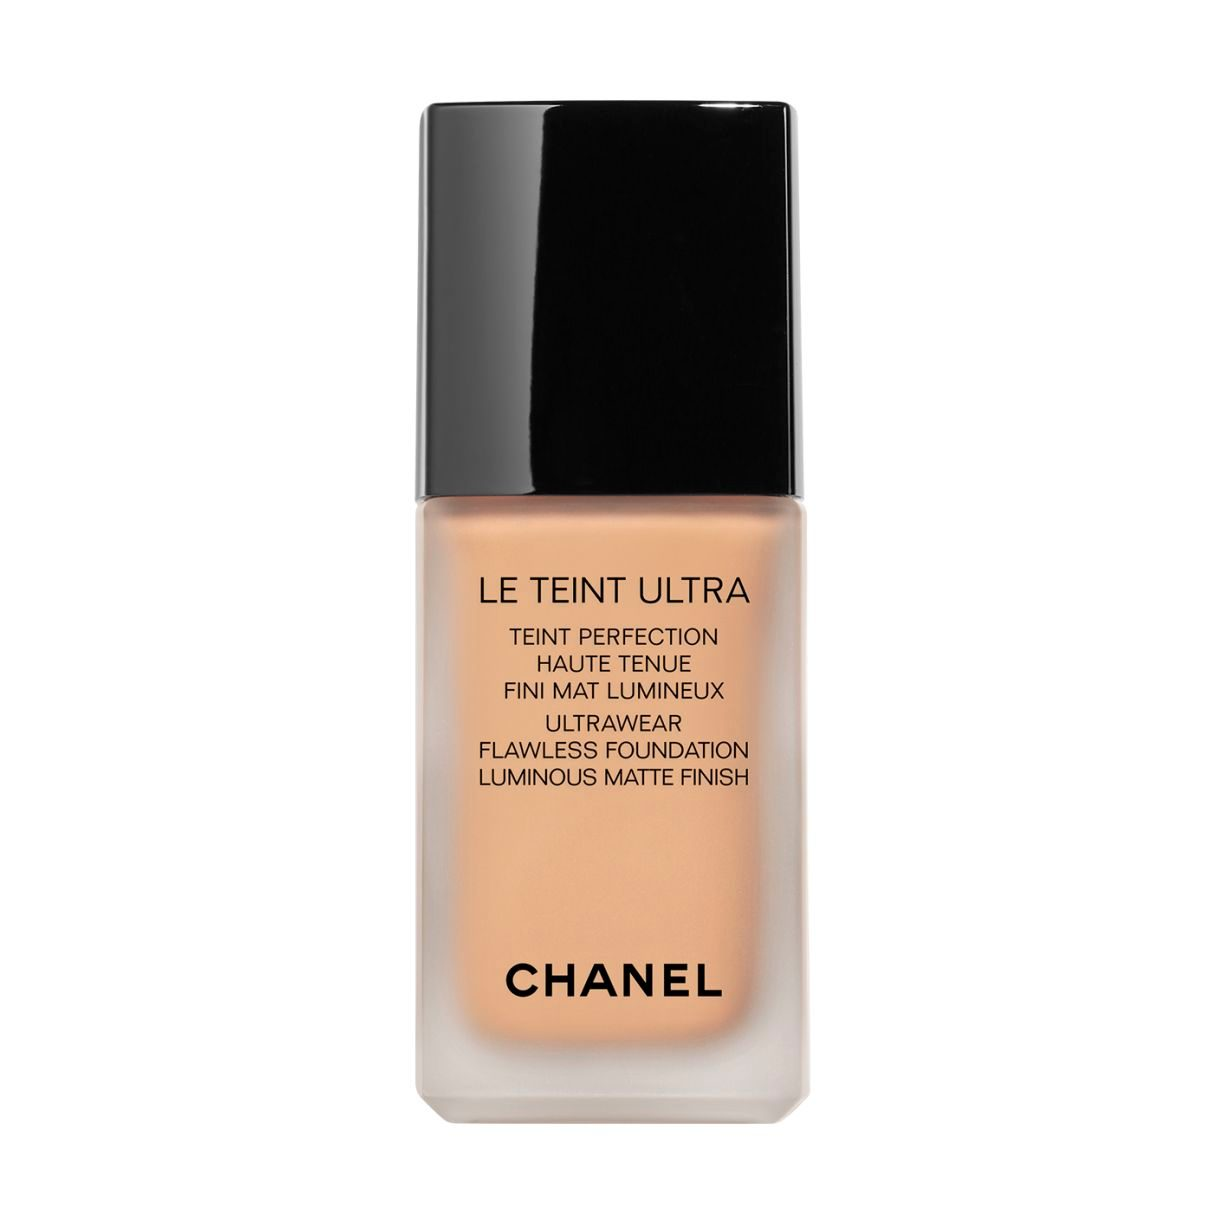 LE TEINT ULTRA TEINT PERFECTION HAUTE TENUE FINI MAT LUMINEUX. 121 CARAMEL 30ML